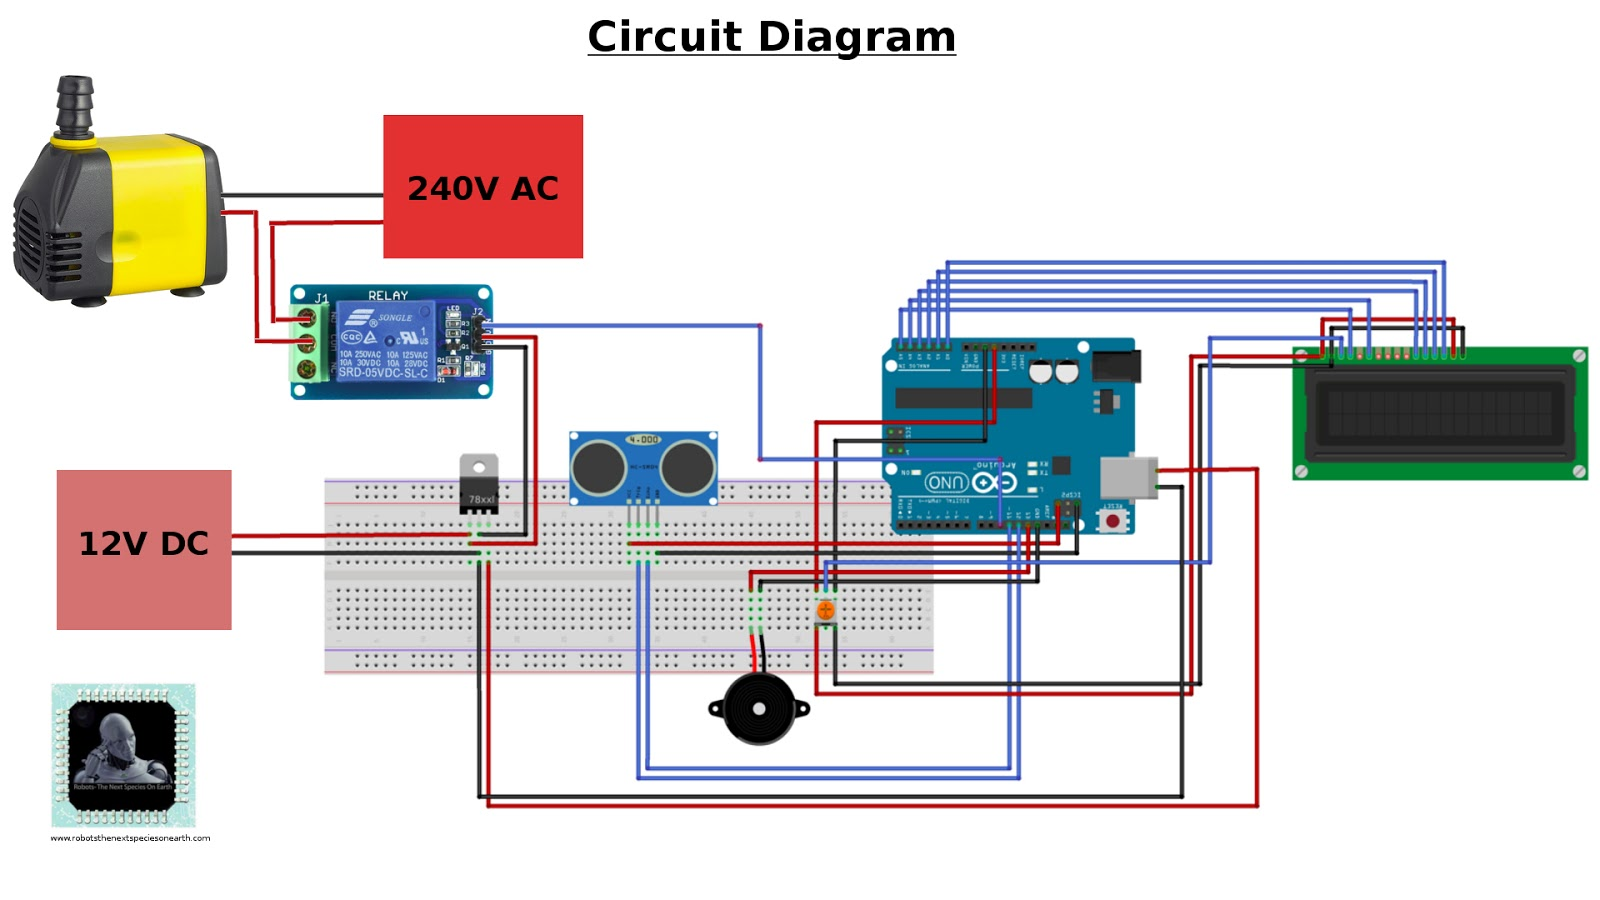 medium resolution of let s move to the circuit diagram